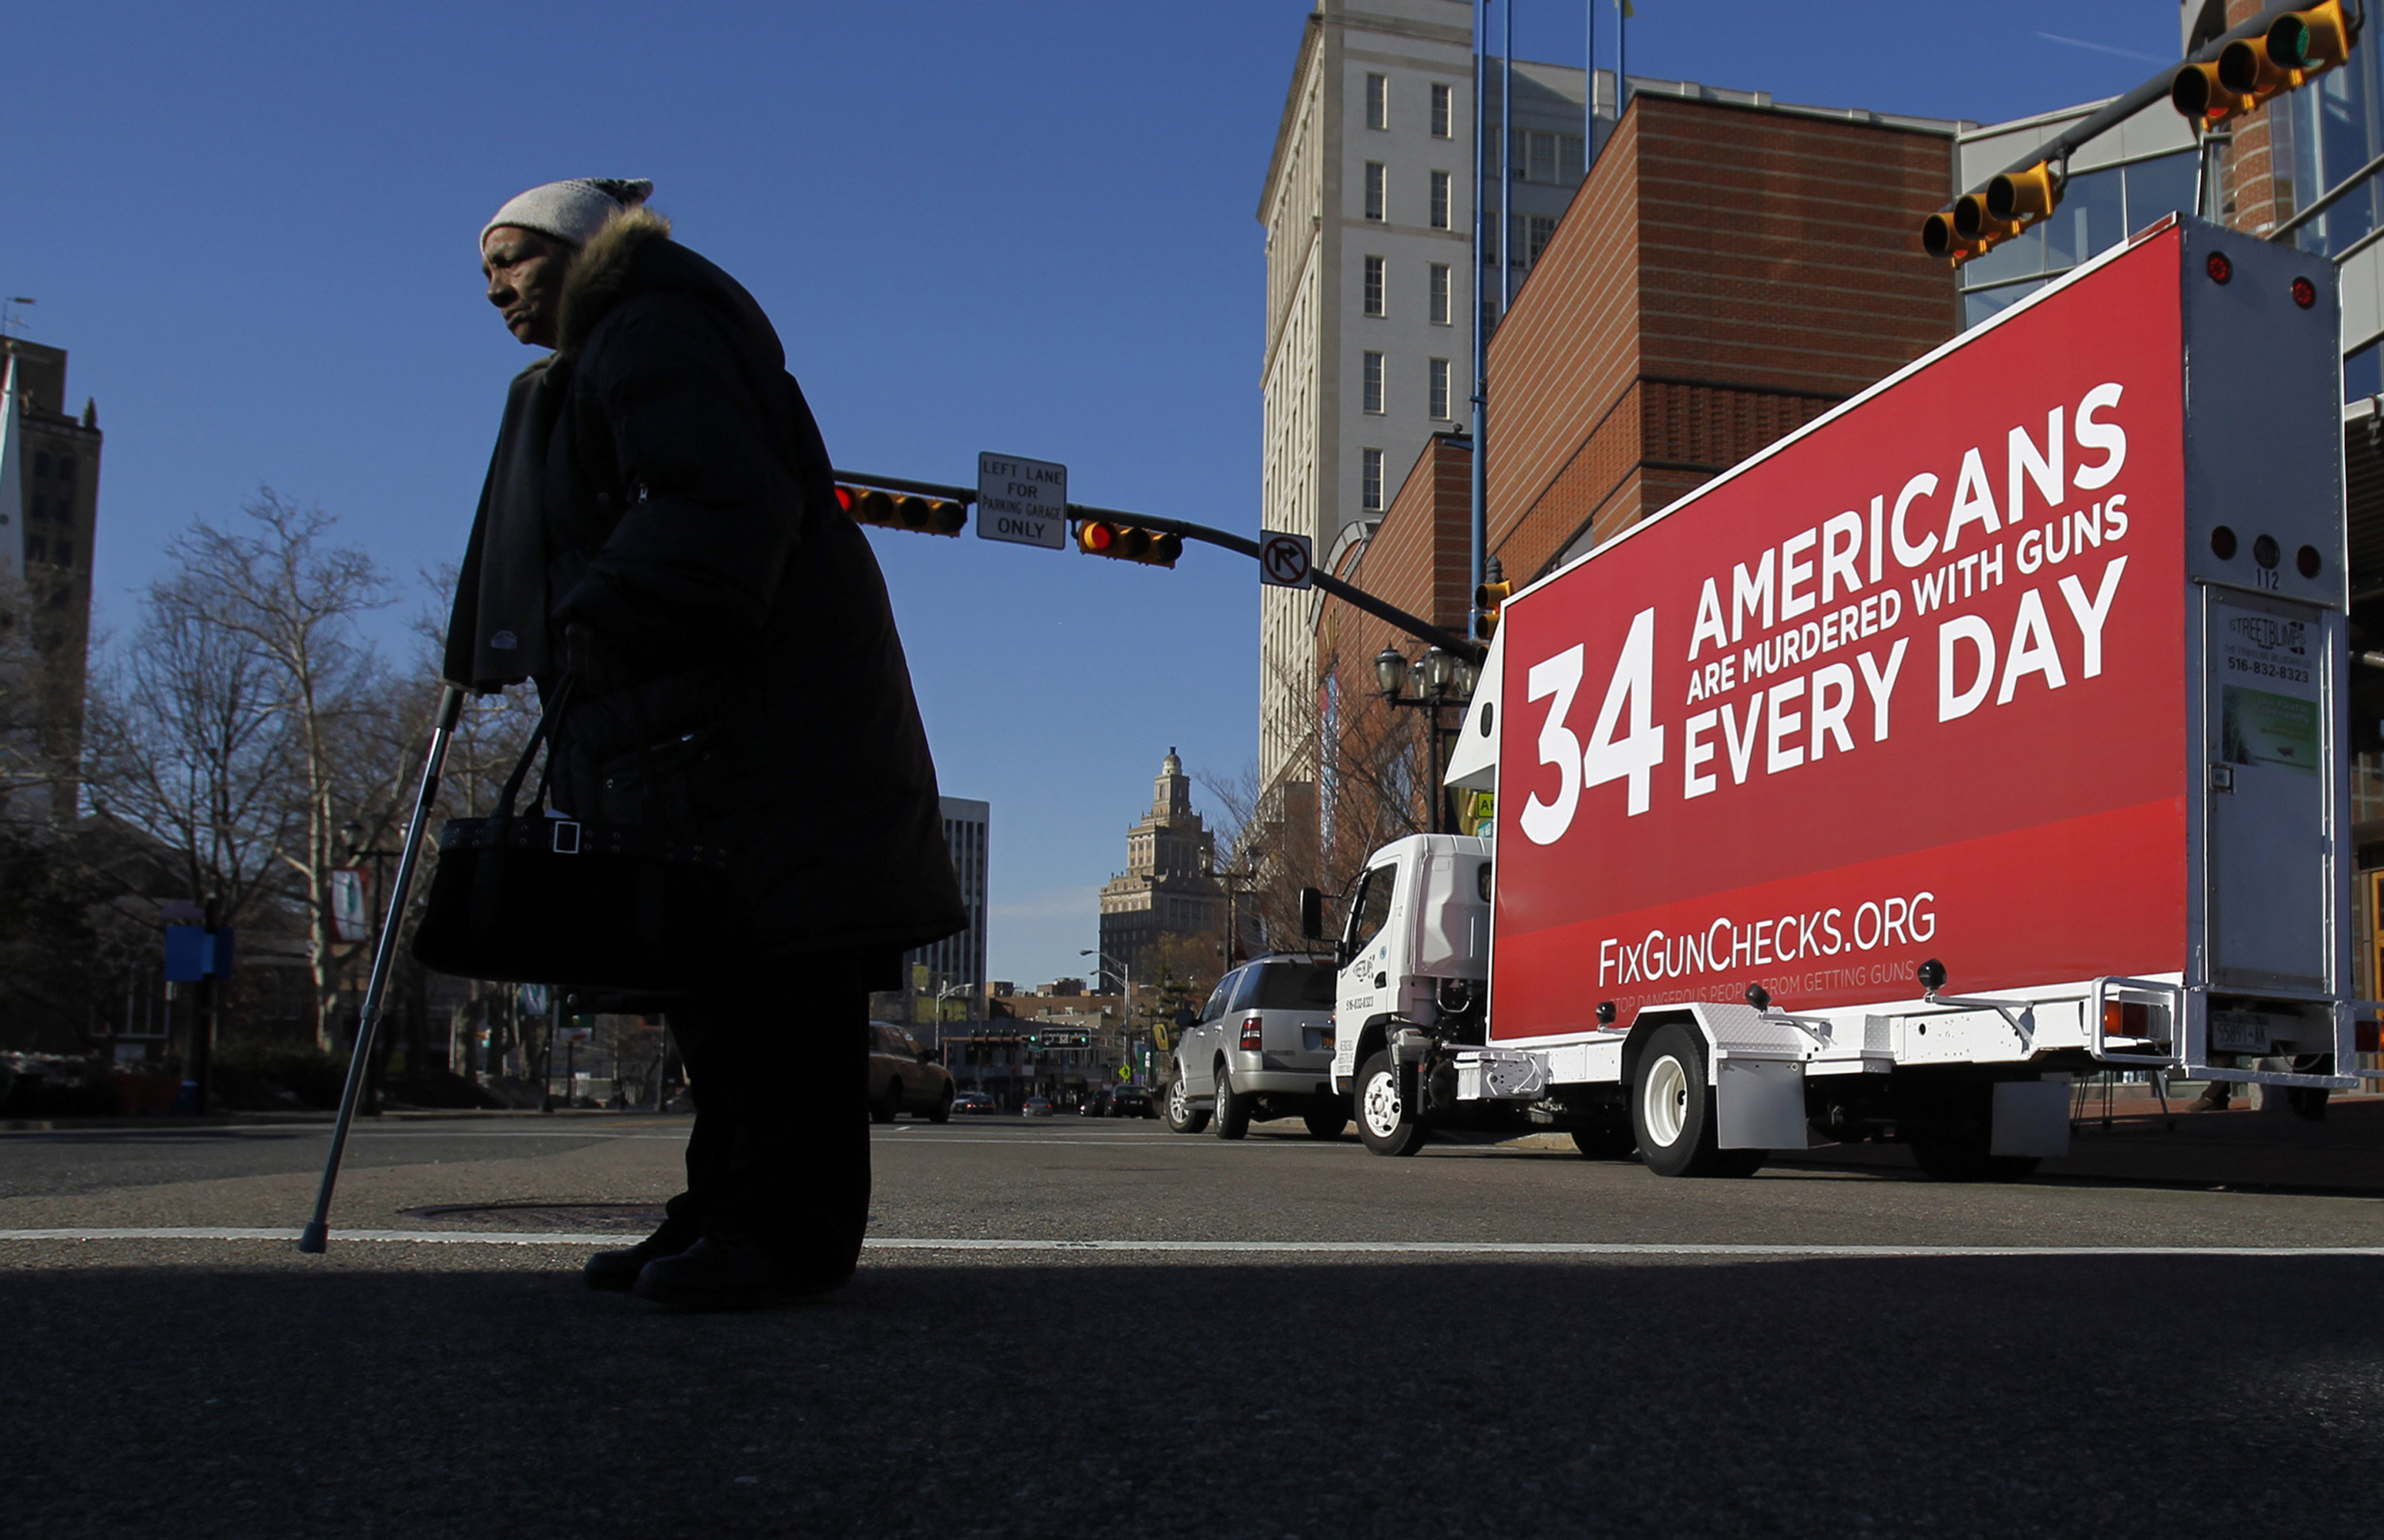 A pedestrian crosses the street near a mobile billboard promoting the FixGunChecks.org Truck tour Wednesday, Feb. 16, 2011, in Newark, N.J. The truck will be driven across the nation as part of the Mayors Against Illegal Guns which was launched by New York City Mayor Michael R. Bloomberg on Wednesday. Its purpose will be to draw public attention to the deadly problems in the nationâ??s gun background check system.